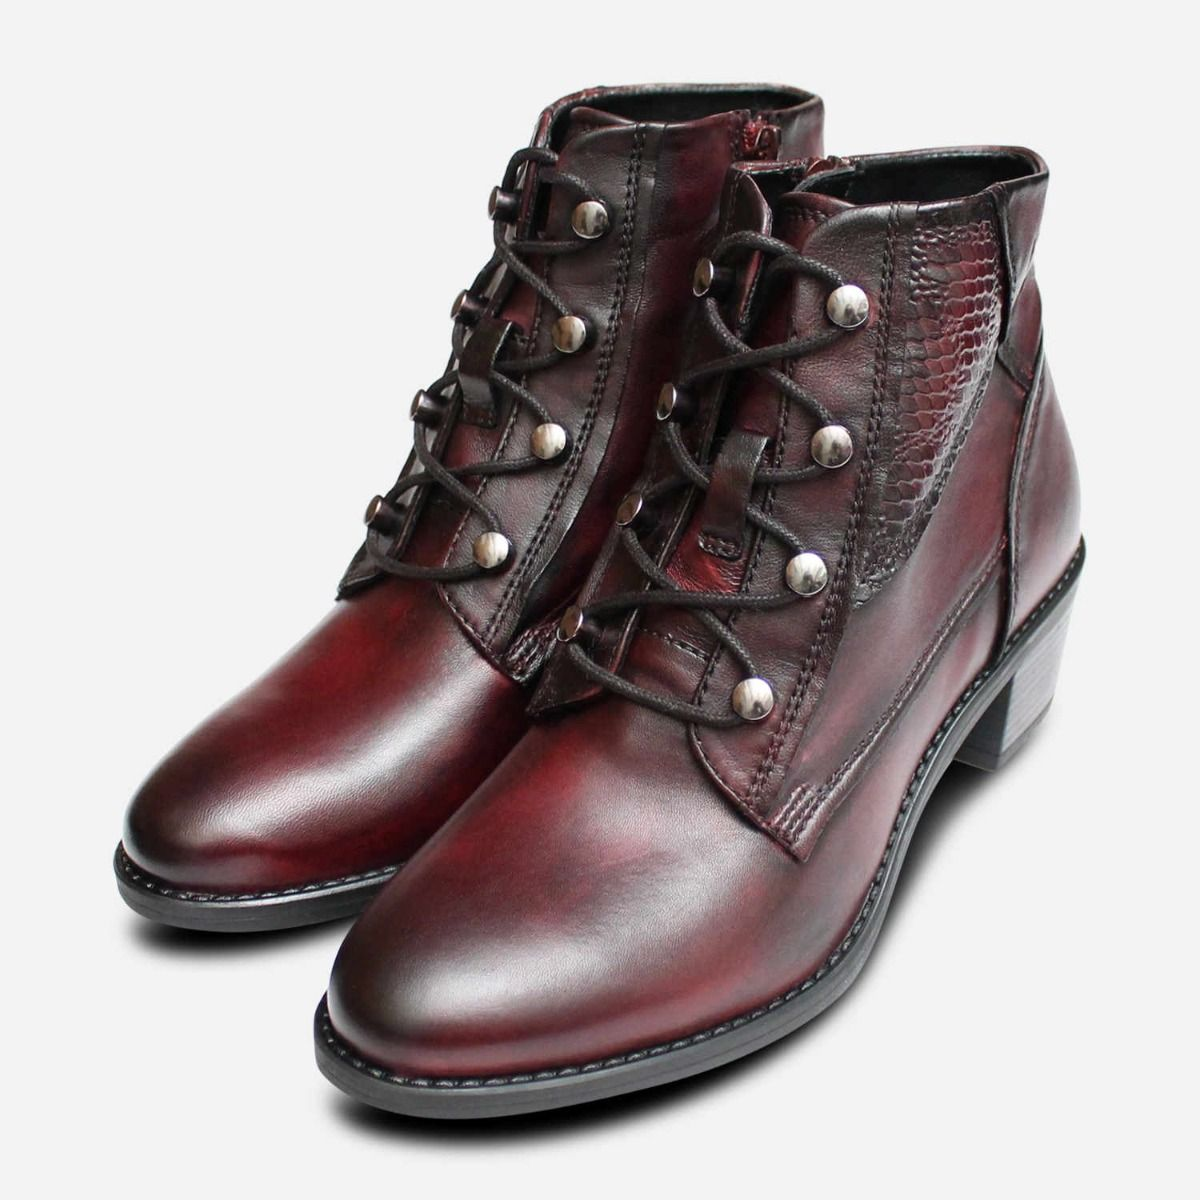 save off various design closer at Bugatti Dark Burgundy Leather Womens Ankle Zip Boots